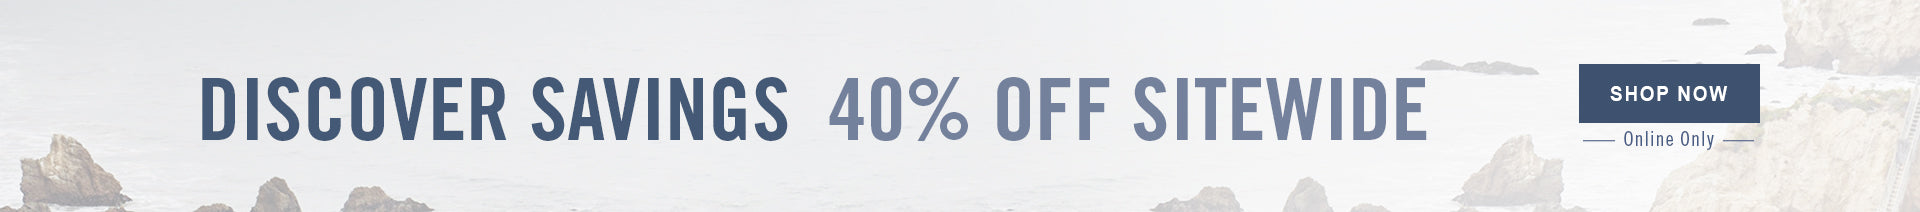 40% OFF SITEWIDE - SHOP NOW